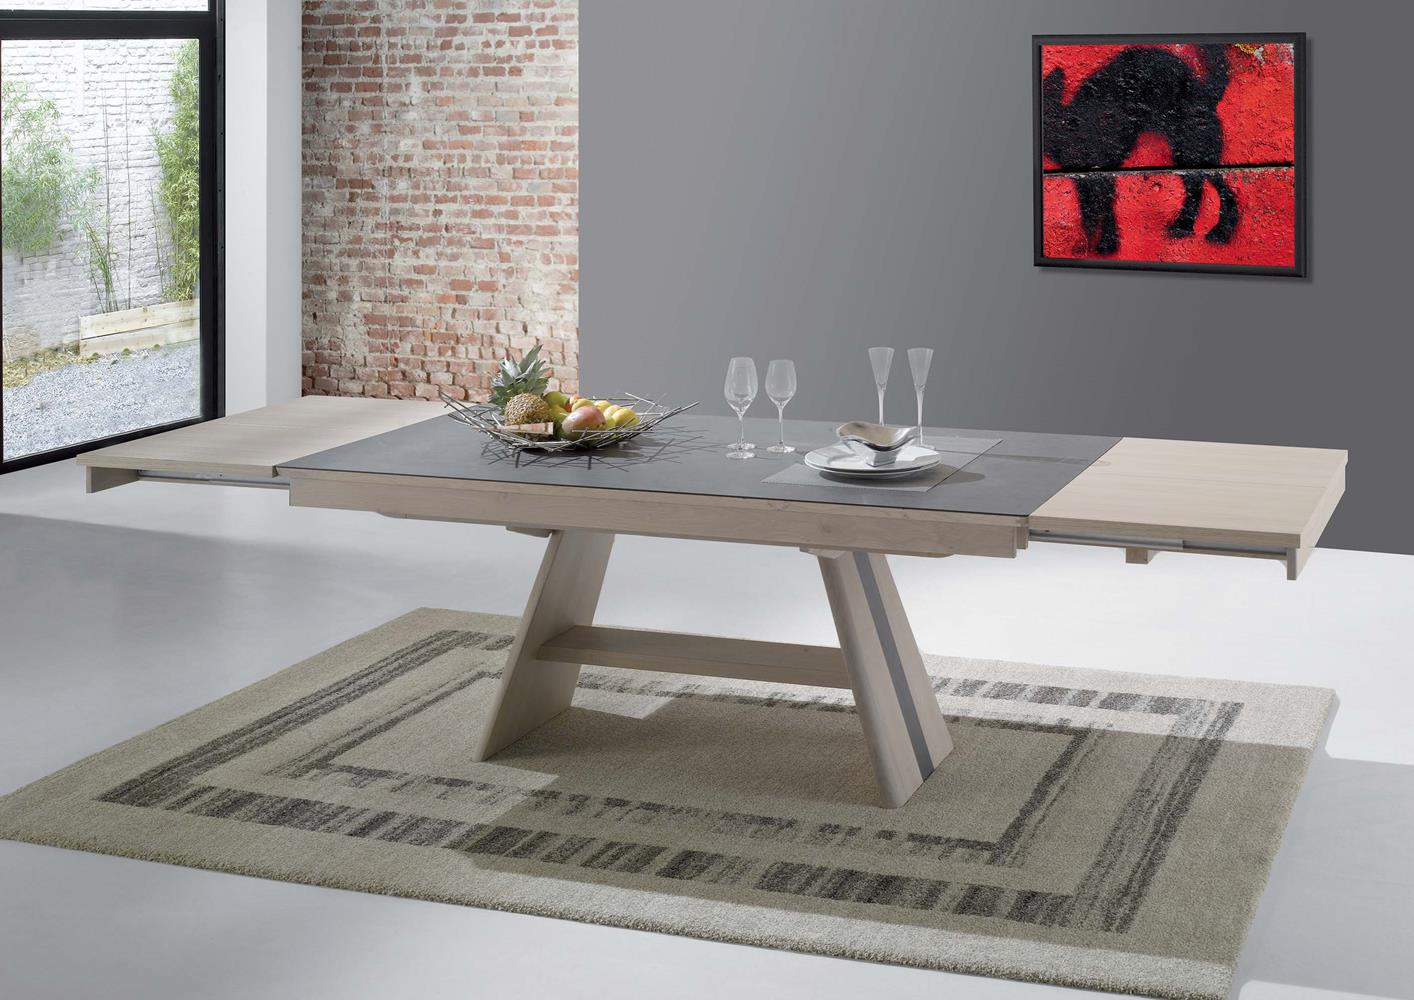 Table salle a manger design pied central valdiz - Table design extensible pied central ...